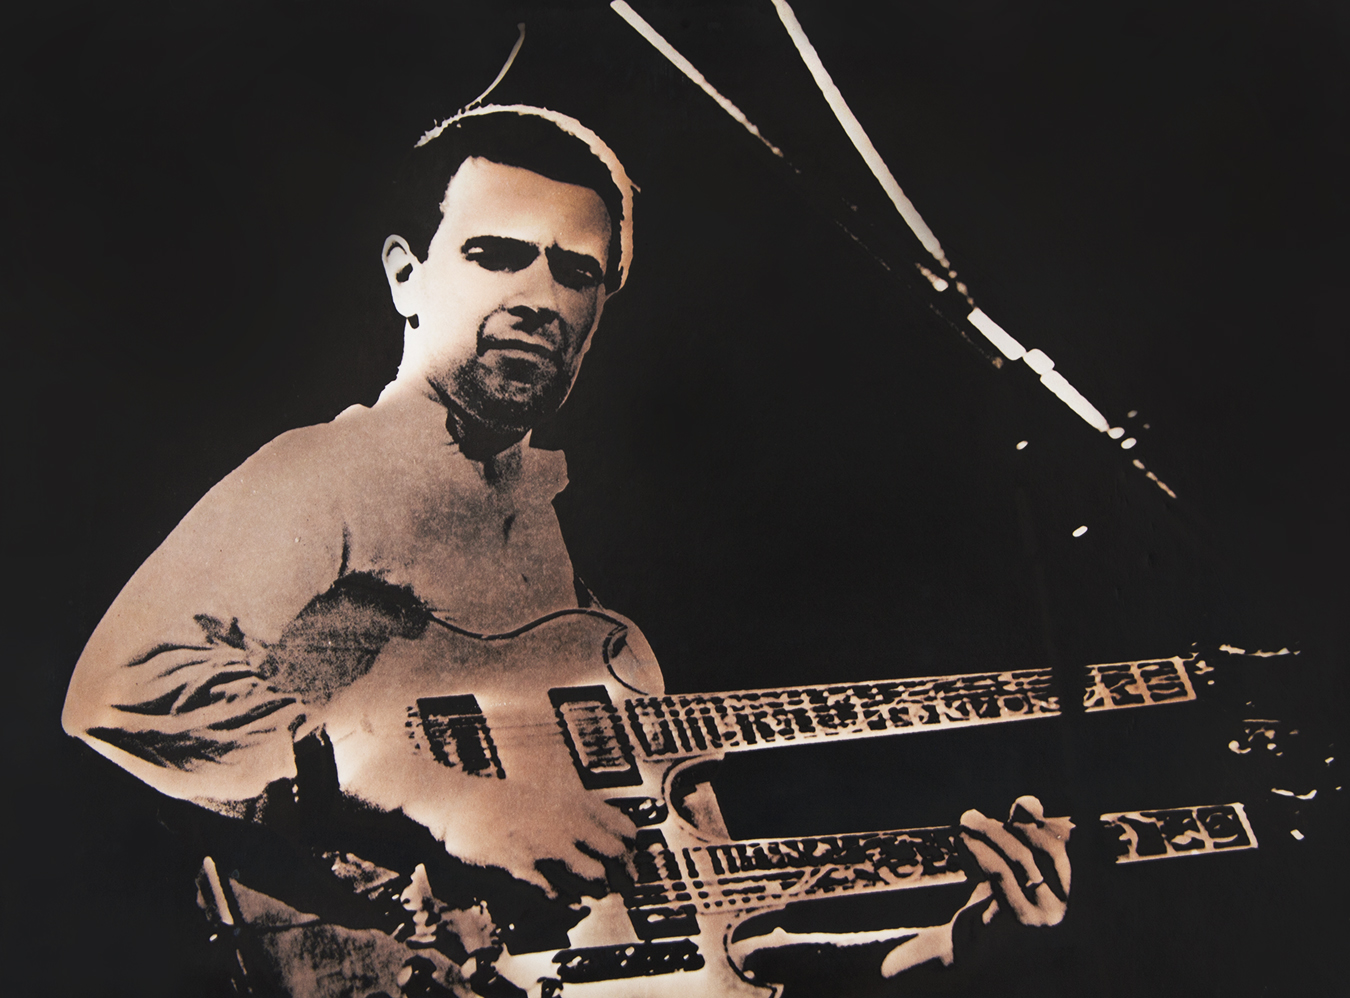 Tony_Ward_early_work_musician_John_McLaughlin_Franklin_Marshall_College_1974